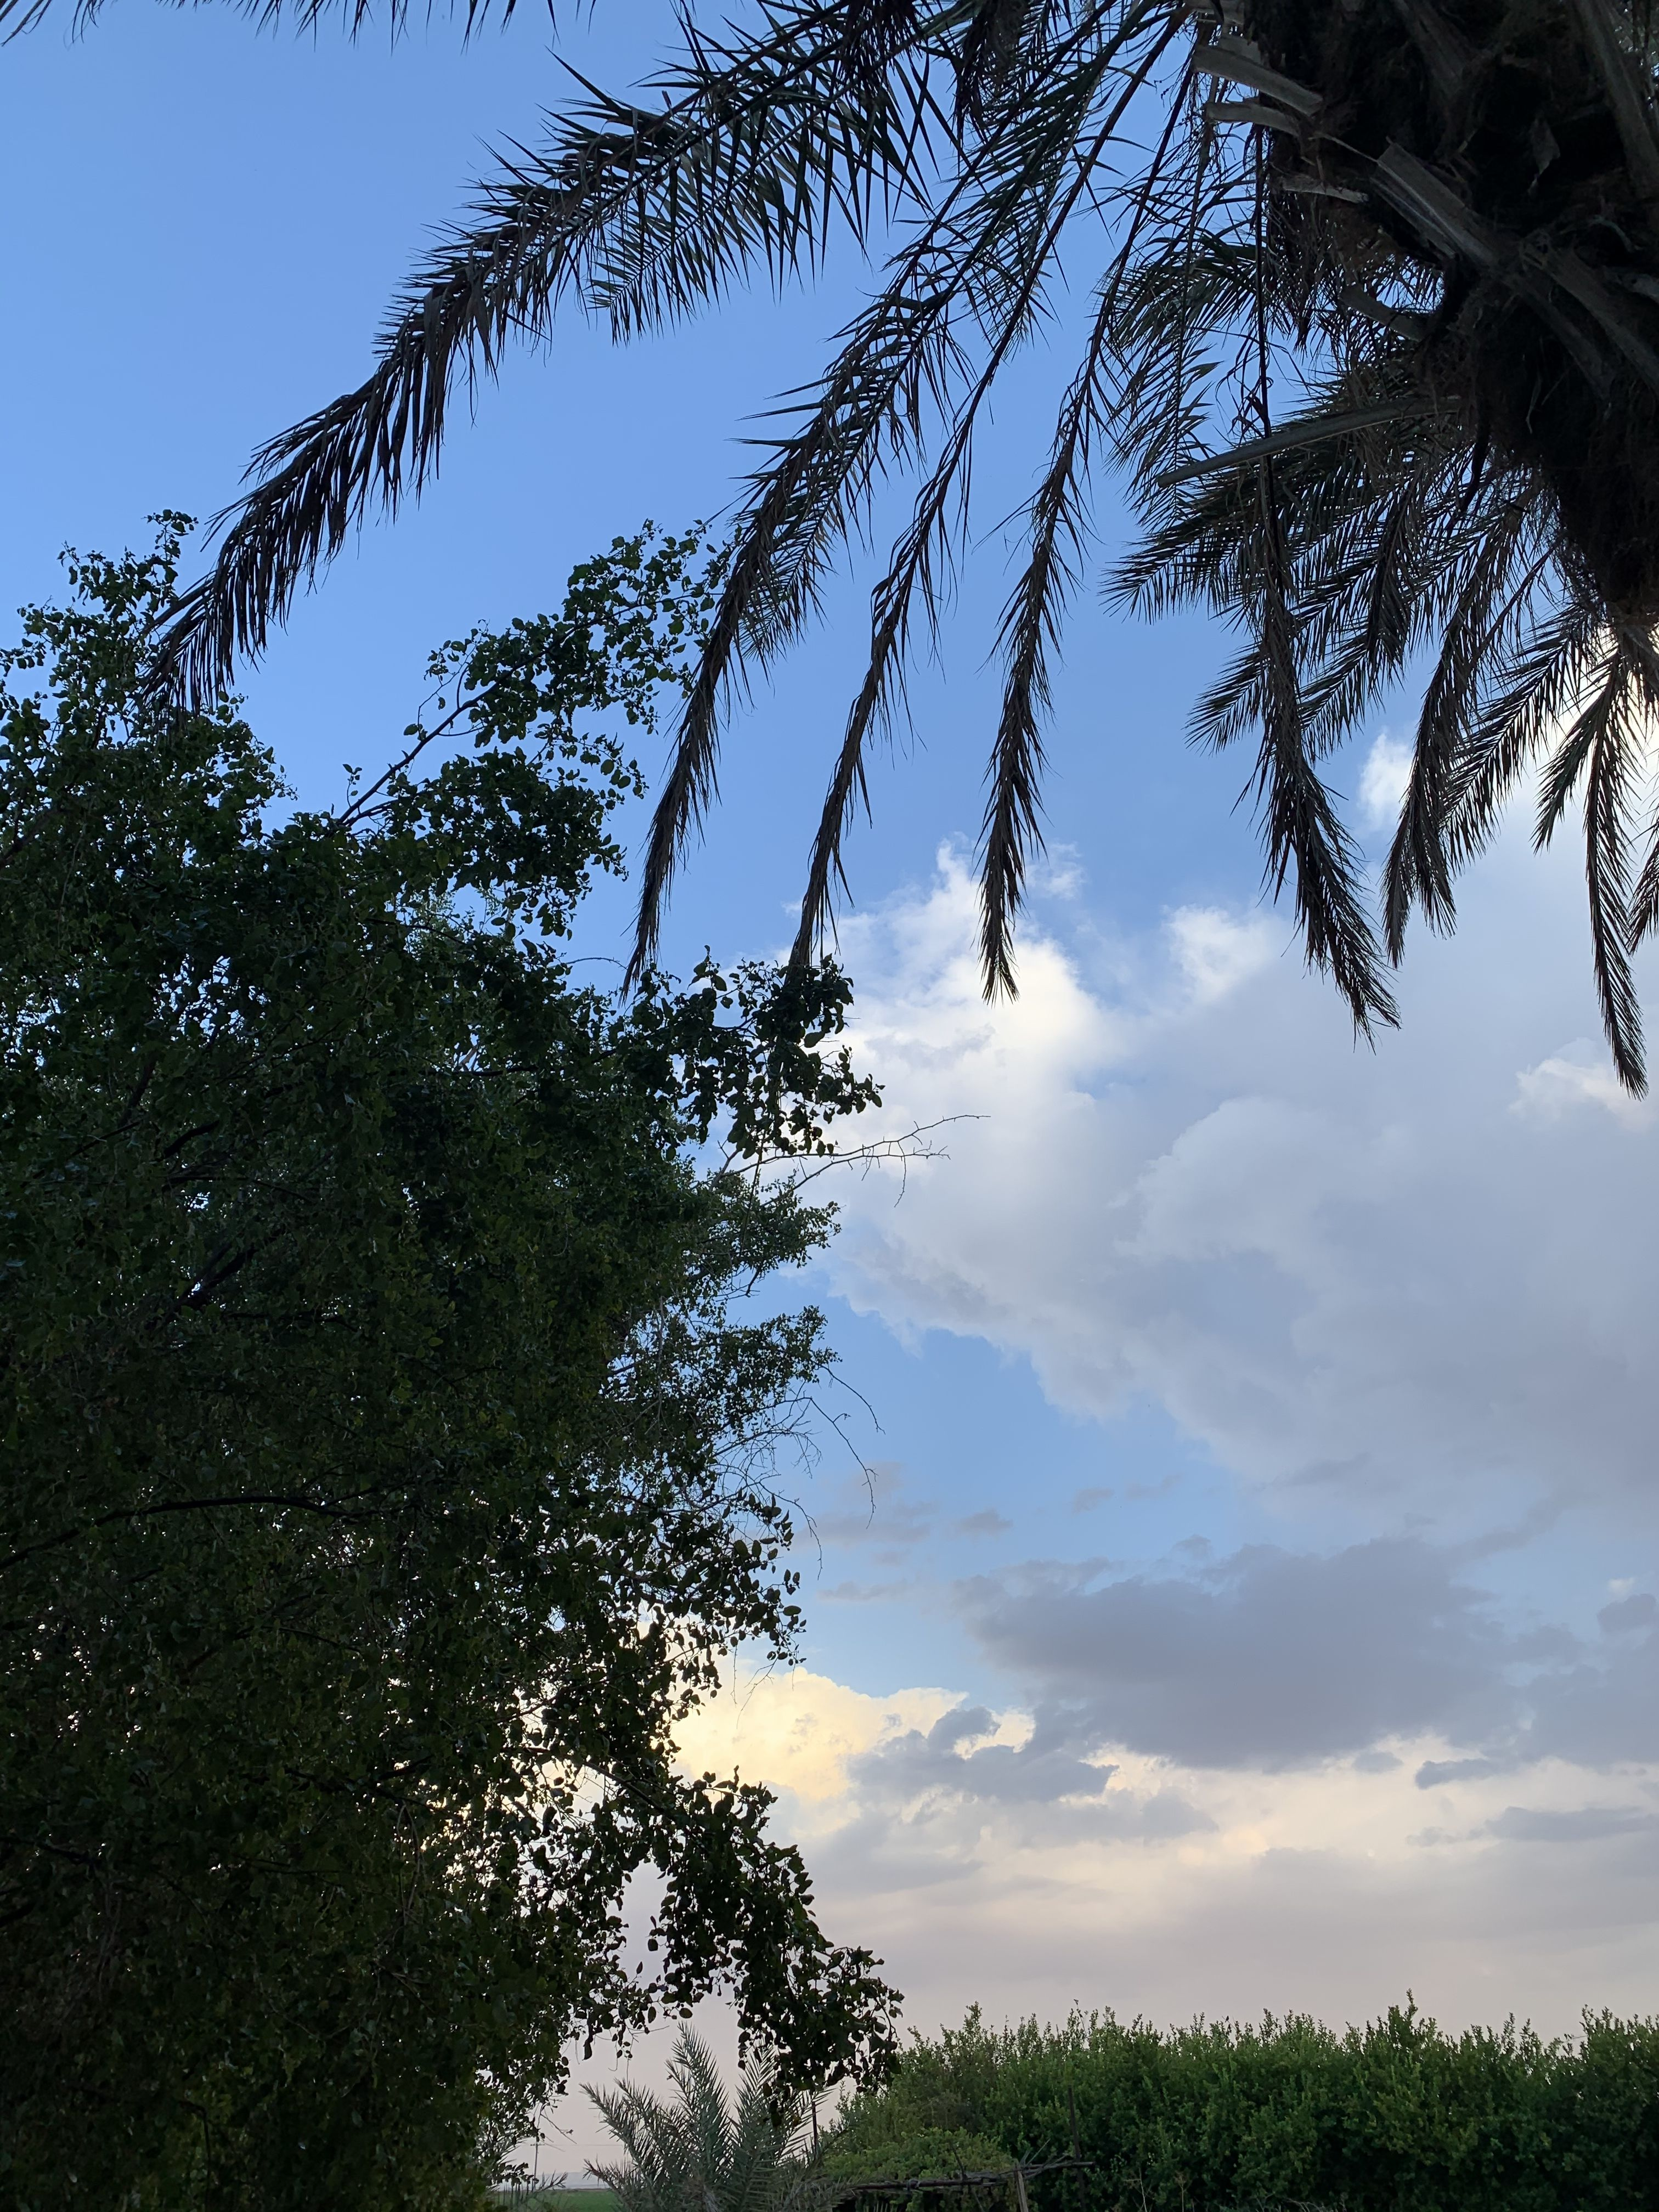 Sky غيوم غيمه سماء Cloud My Pictures Pictures Clouds